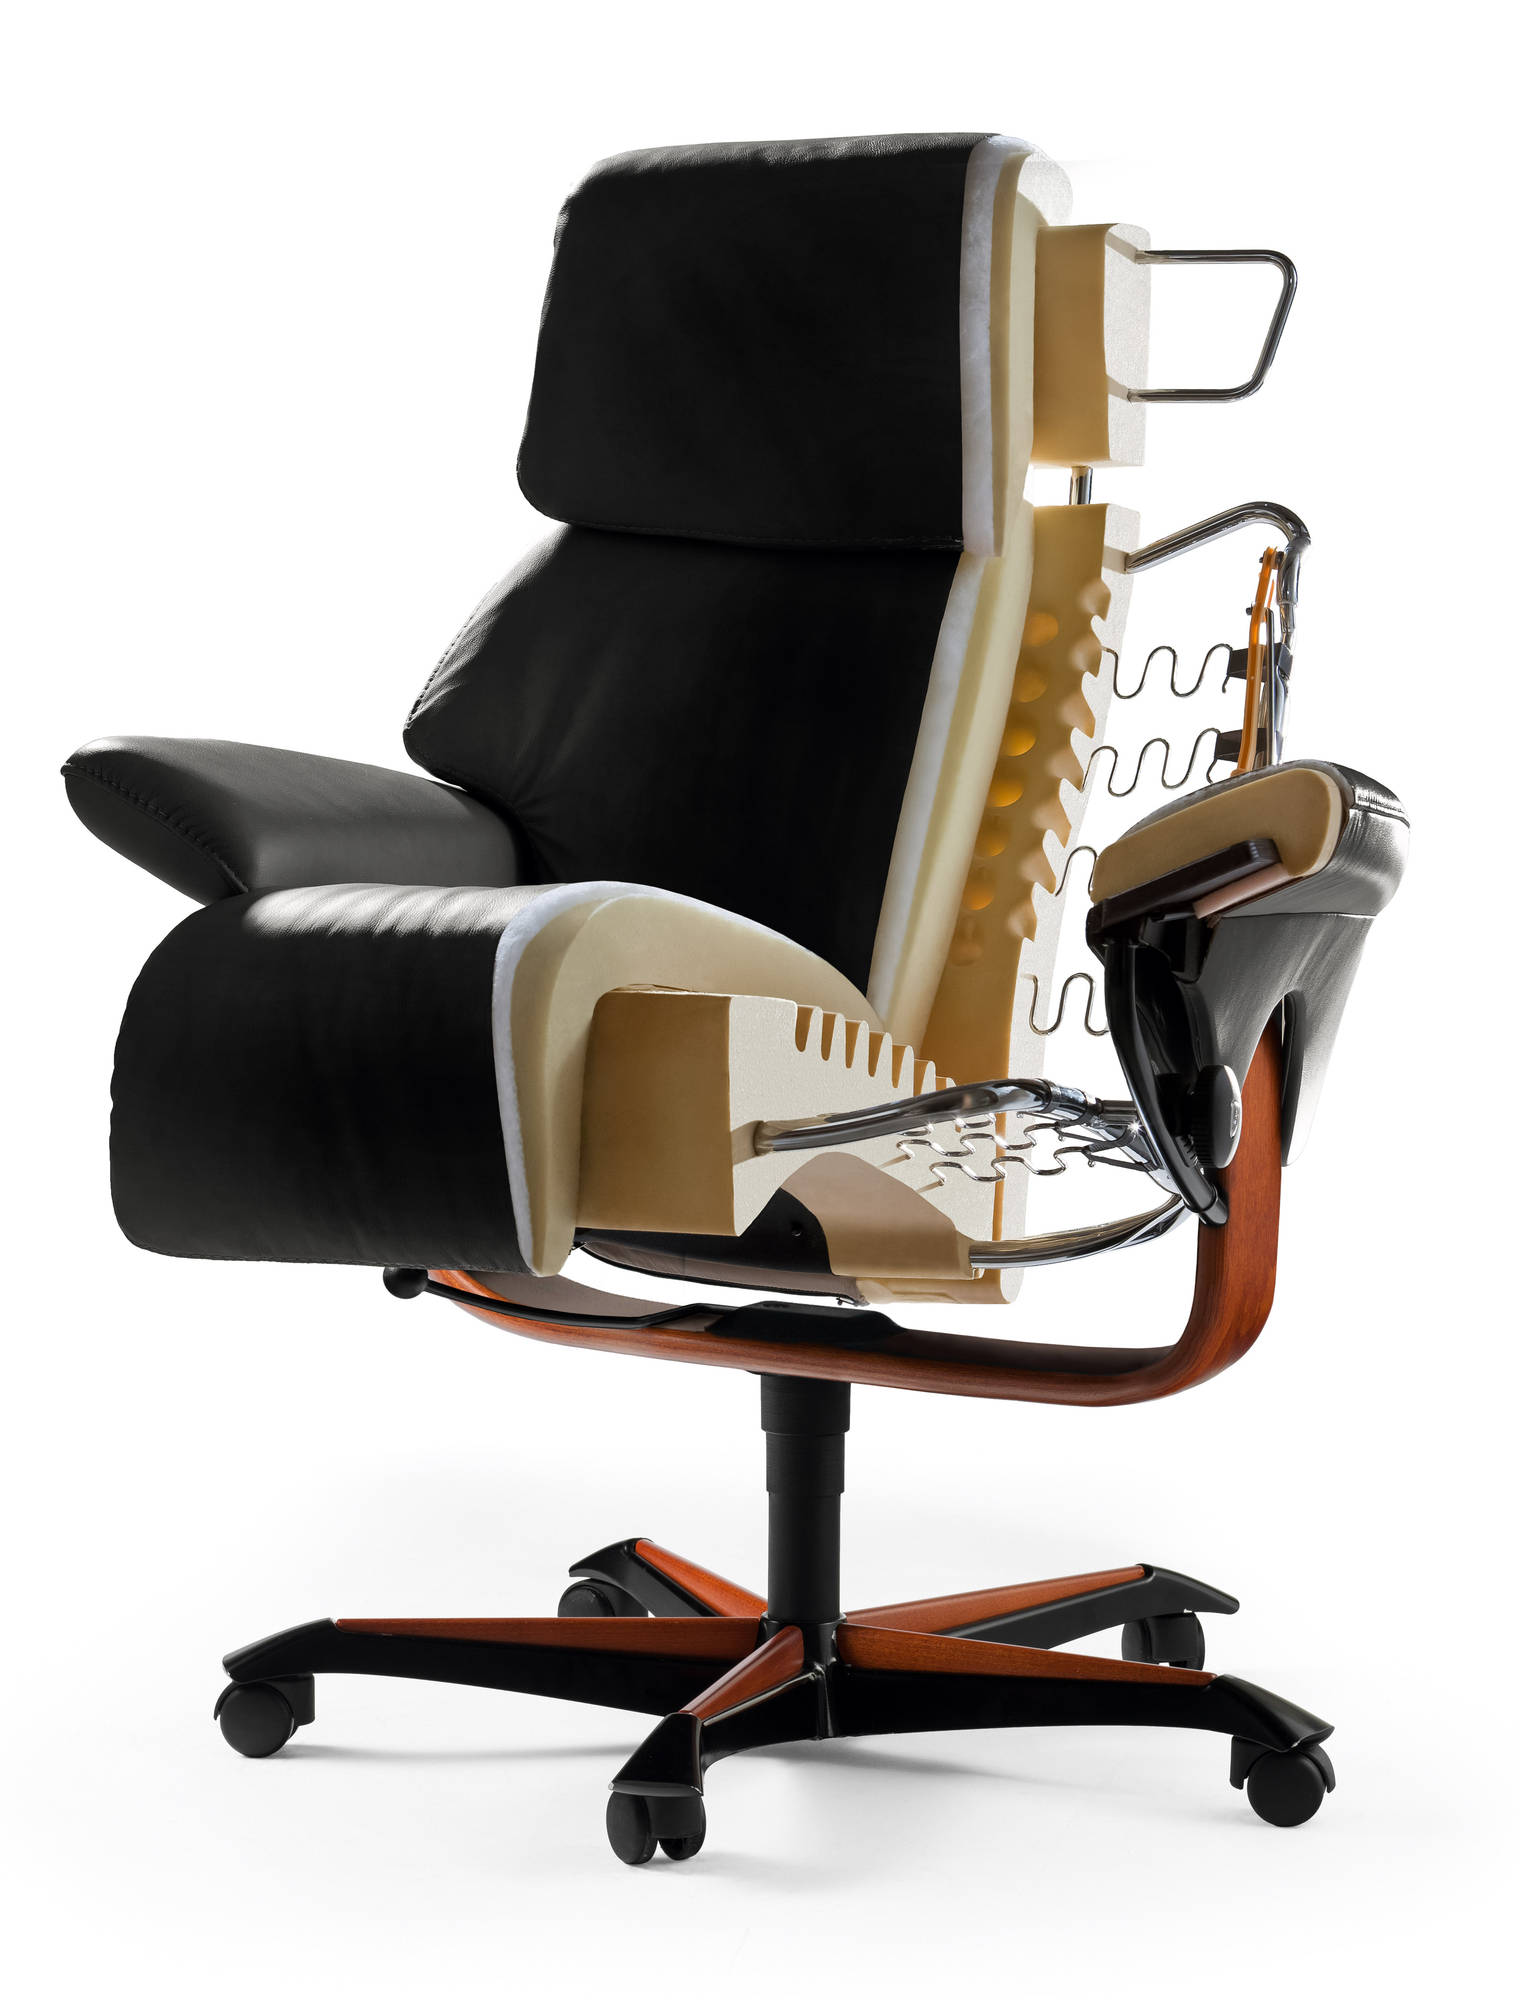 Most comfortable office chair - Office Stressless Technology Revealed